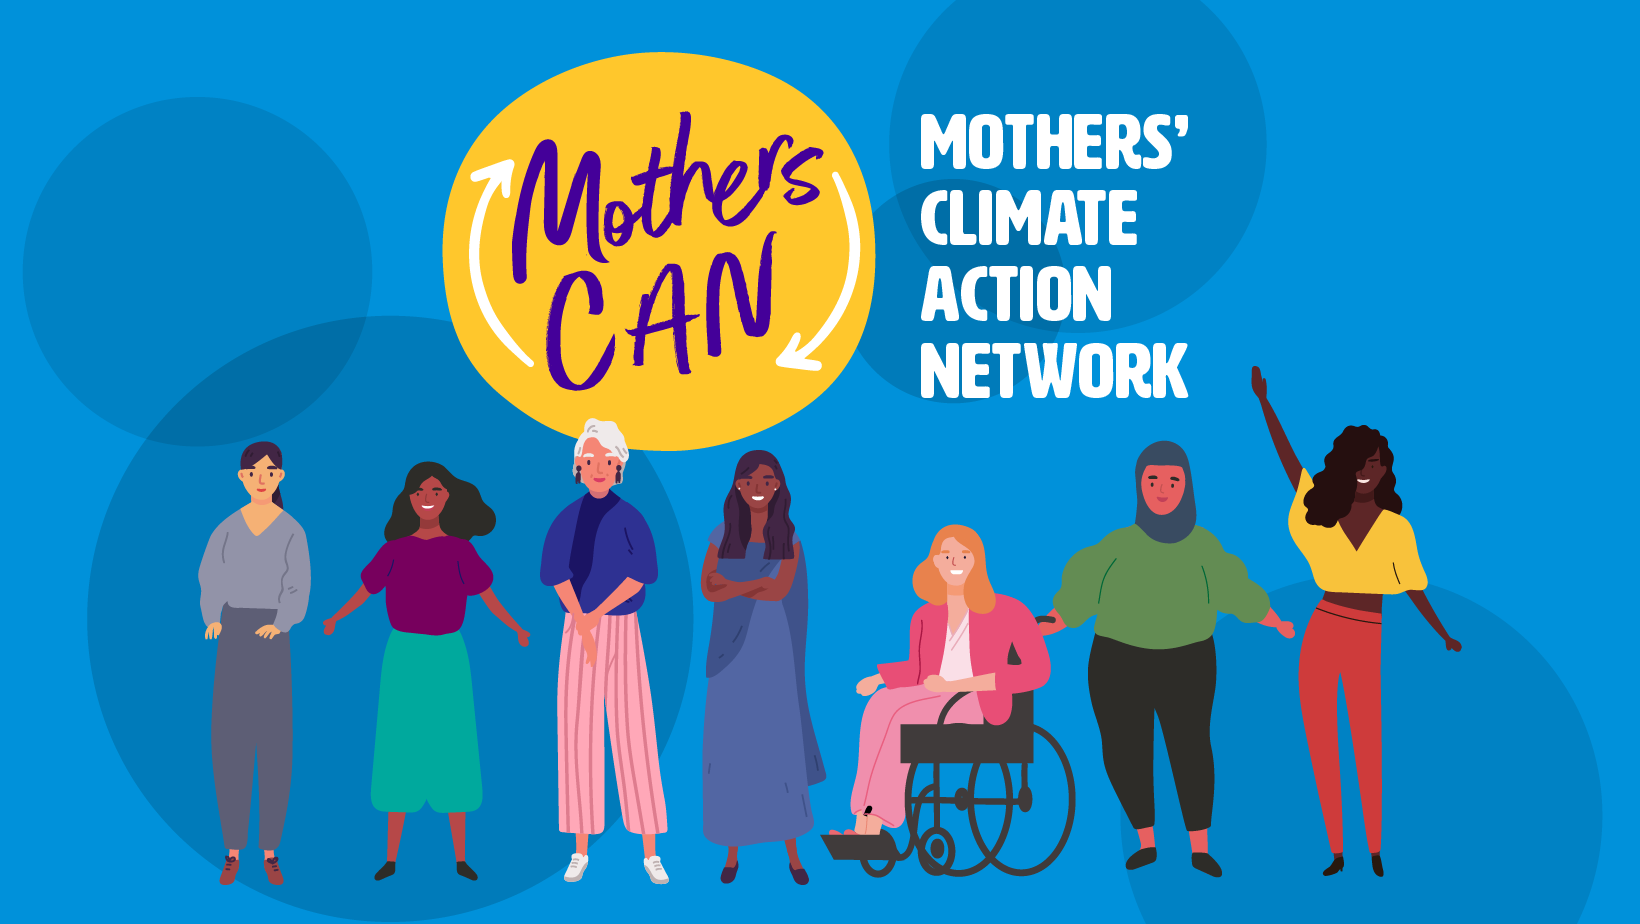 Mothers CAN logo